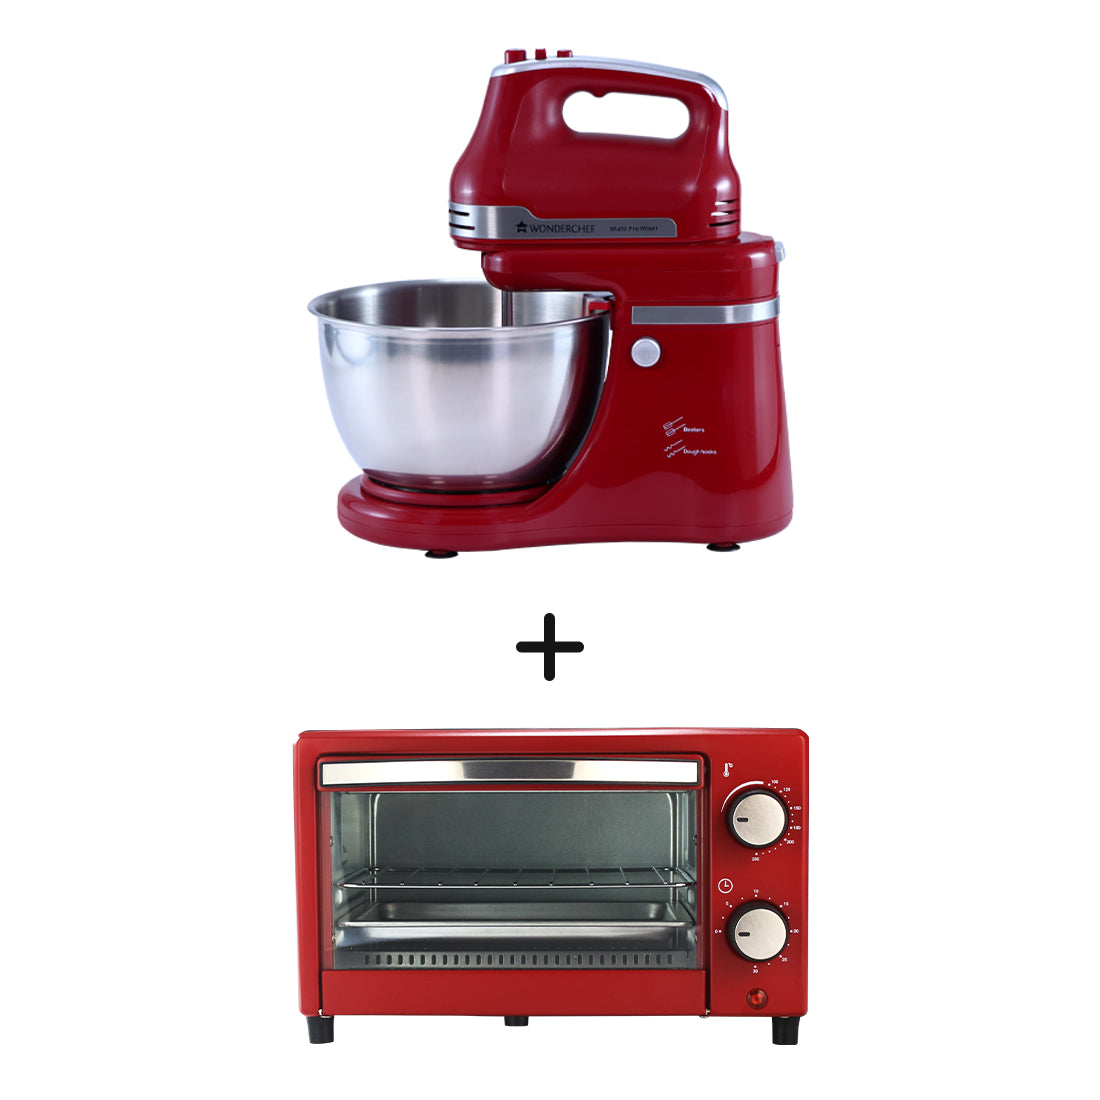 Crimson Edge Stand Mixer and Crimson Edge OTG 9 Litres